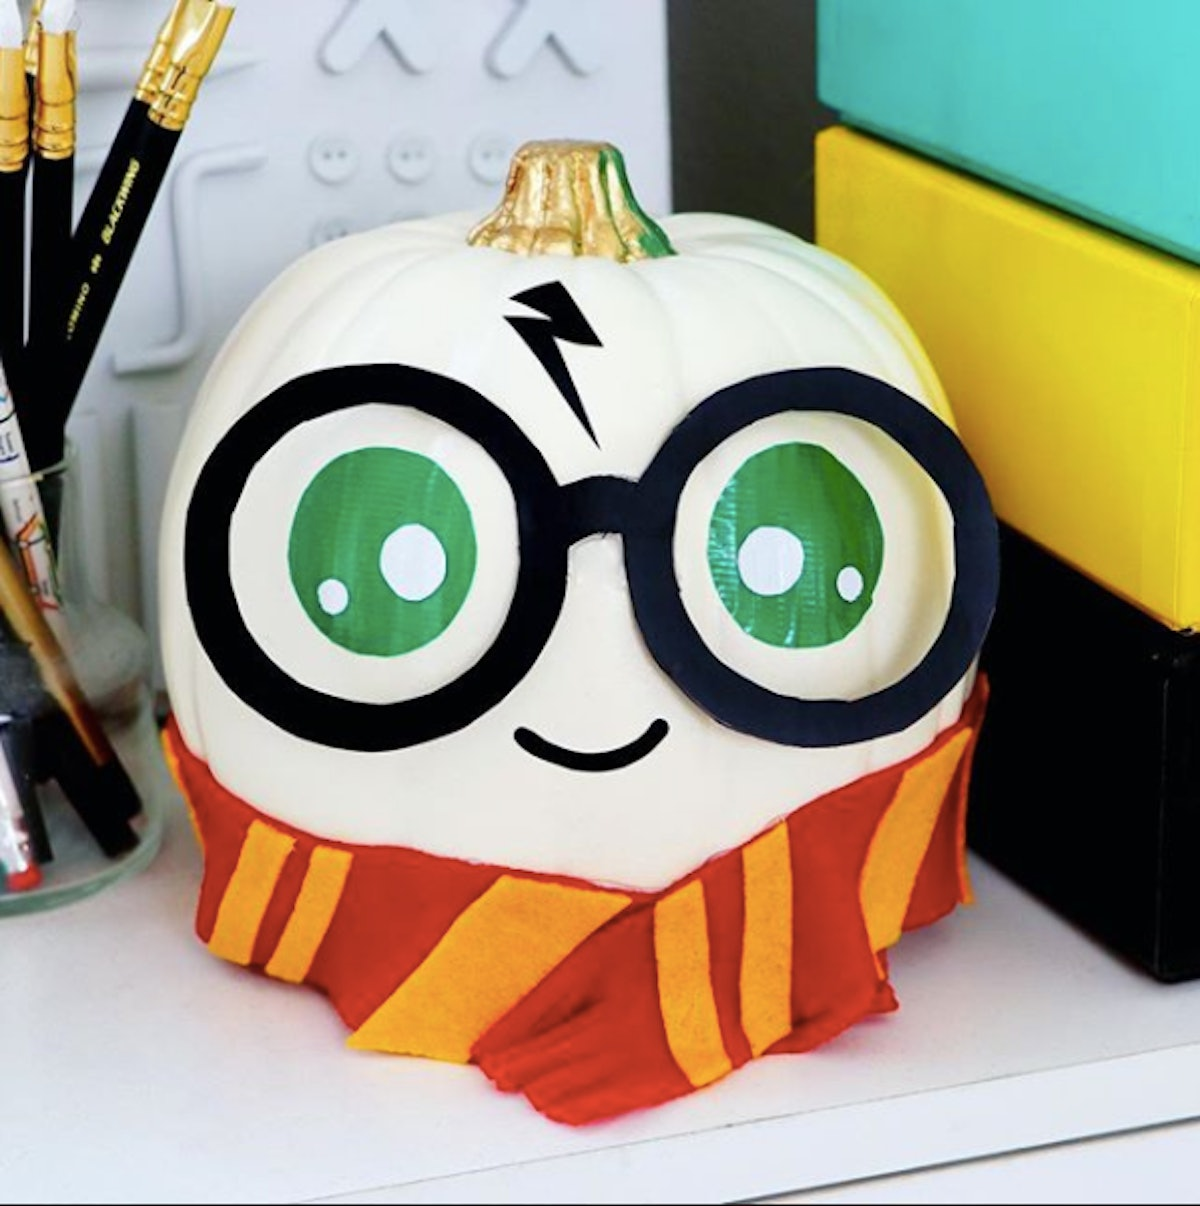 These Harry Potter Pumpkins Are The Cutest DIY Halloween Accessories You'll See All Year